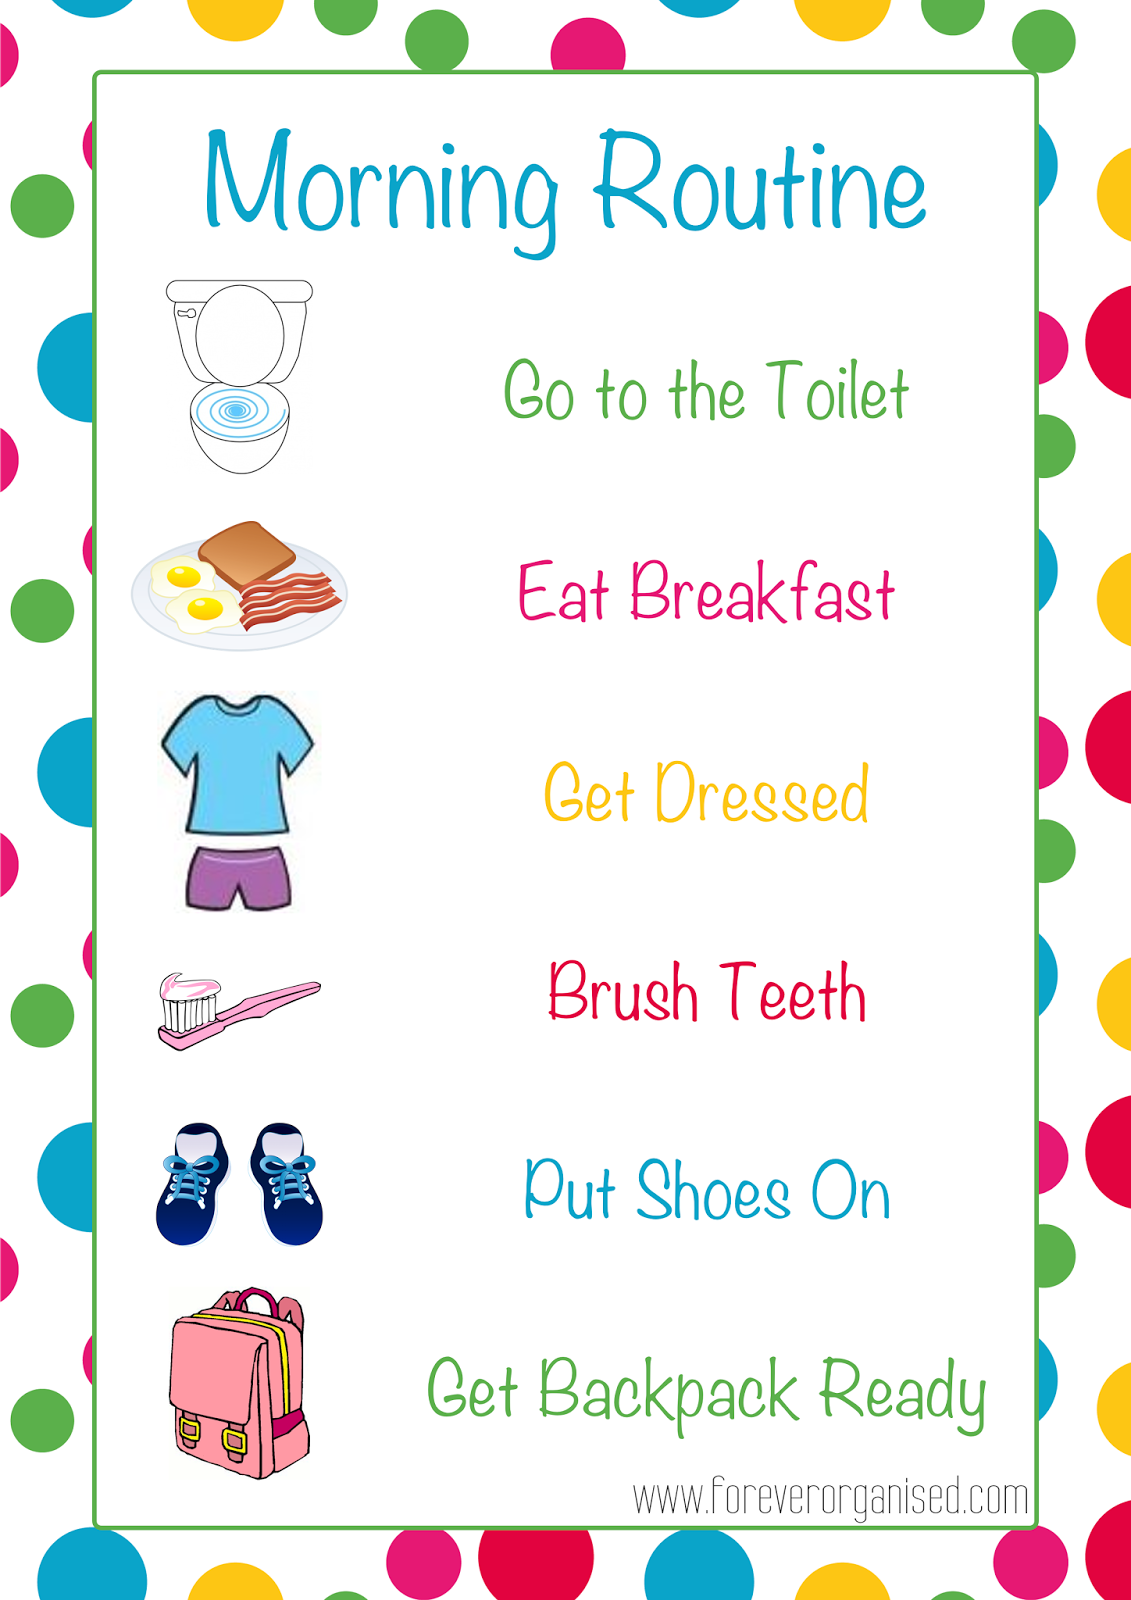 clip freeuse stock Free download clip art. Morning routine clipart